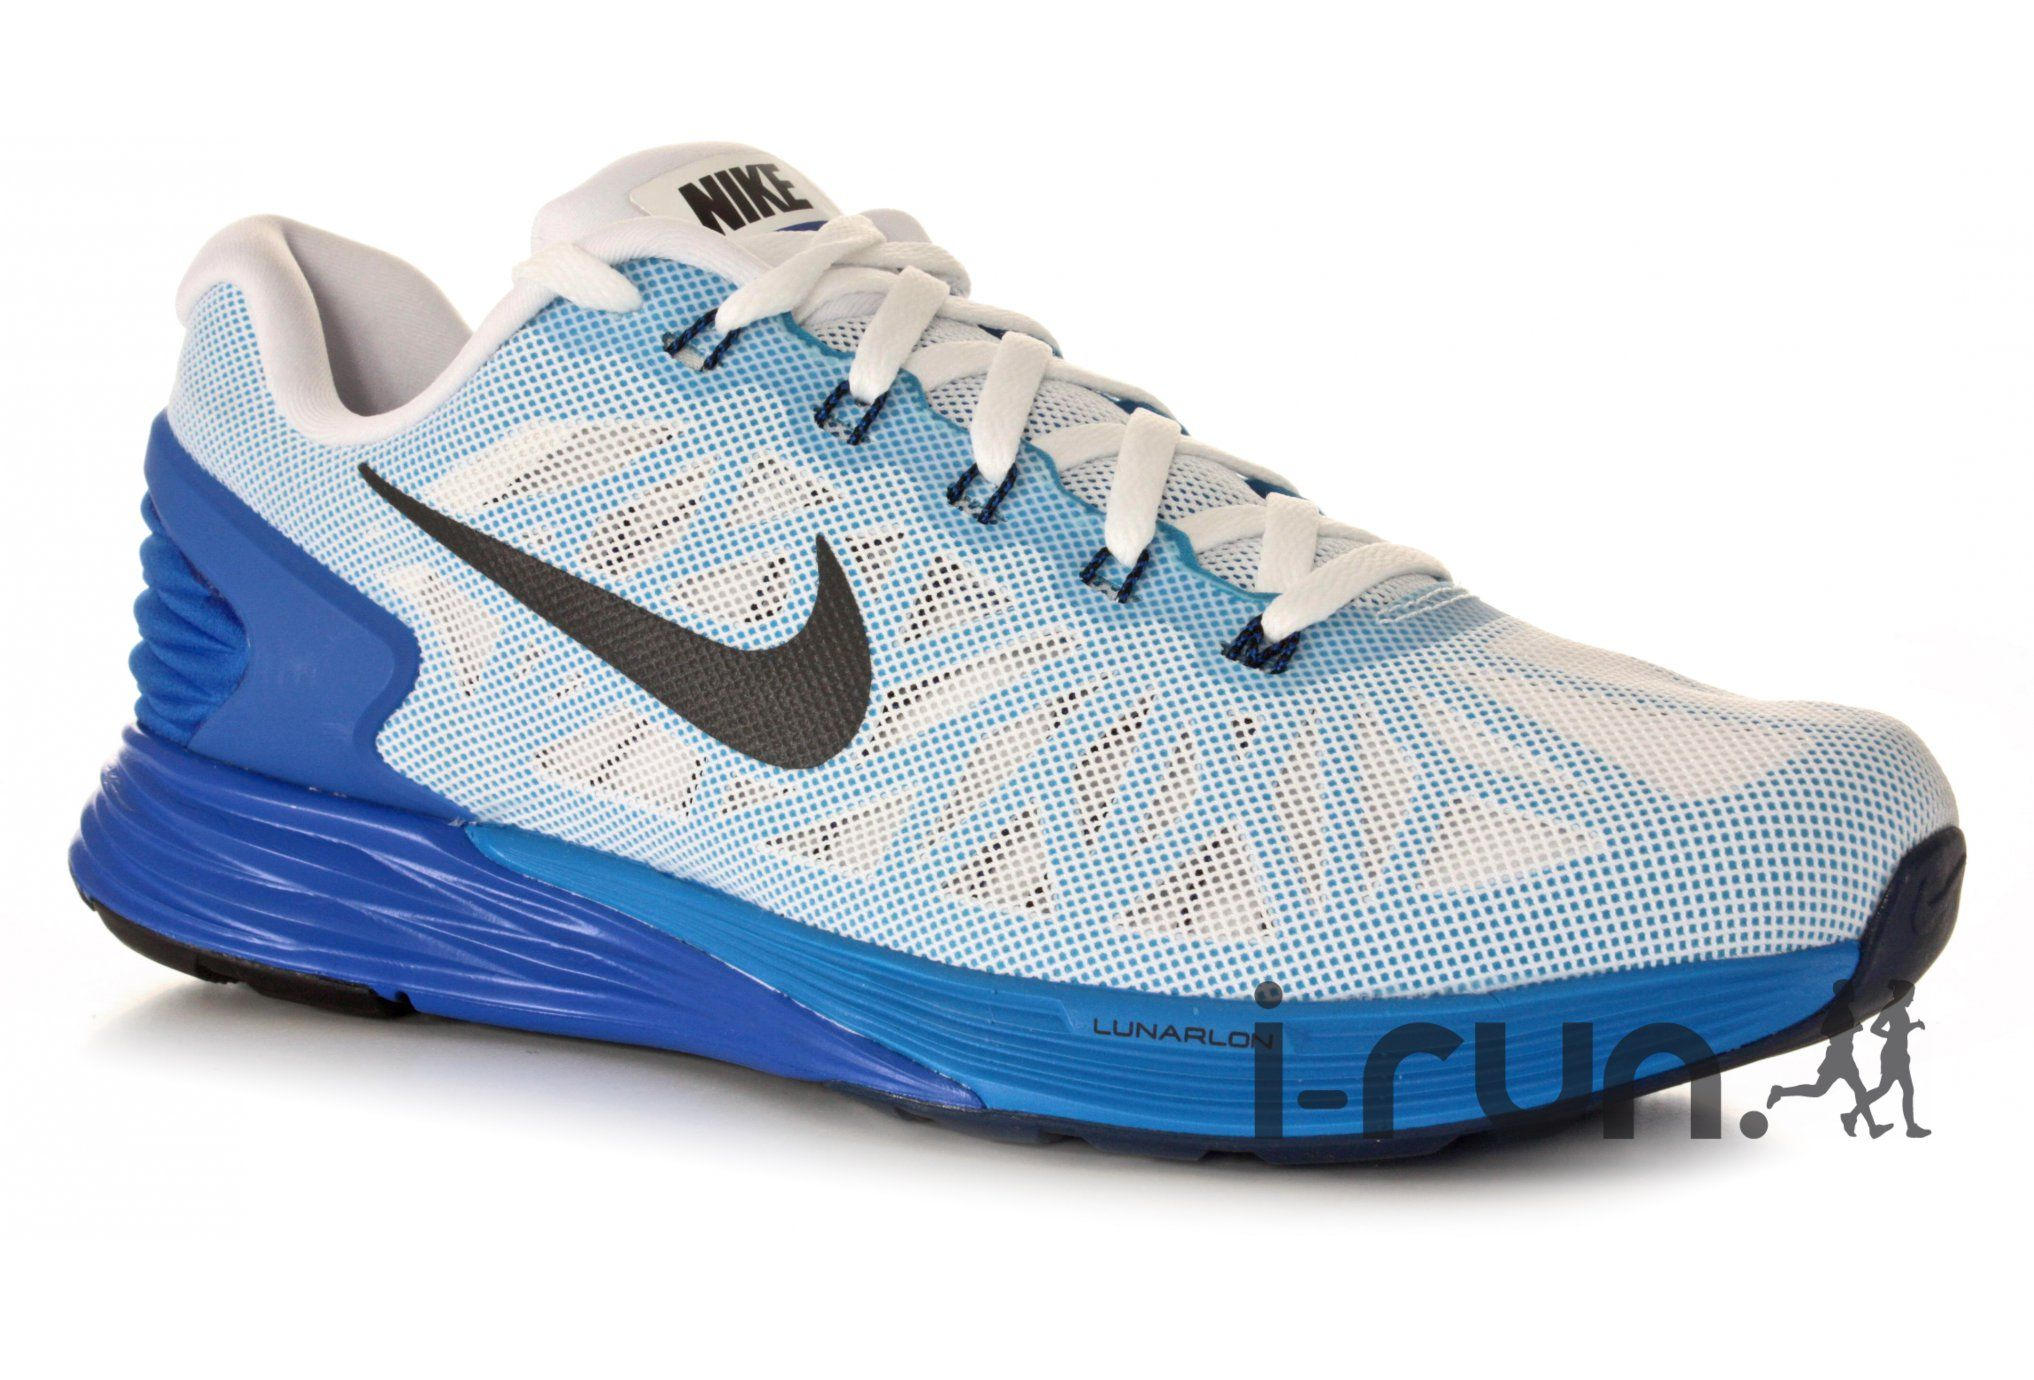 promo chaussure homme nike